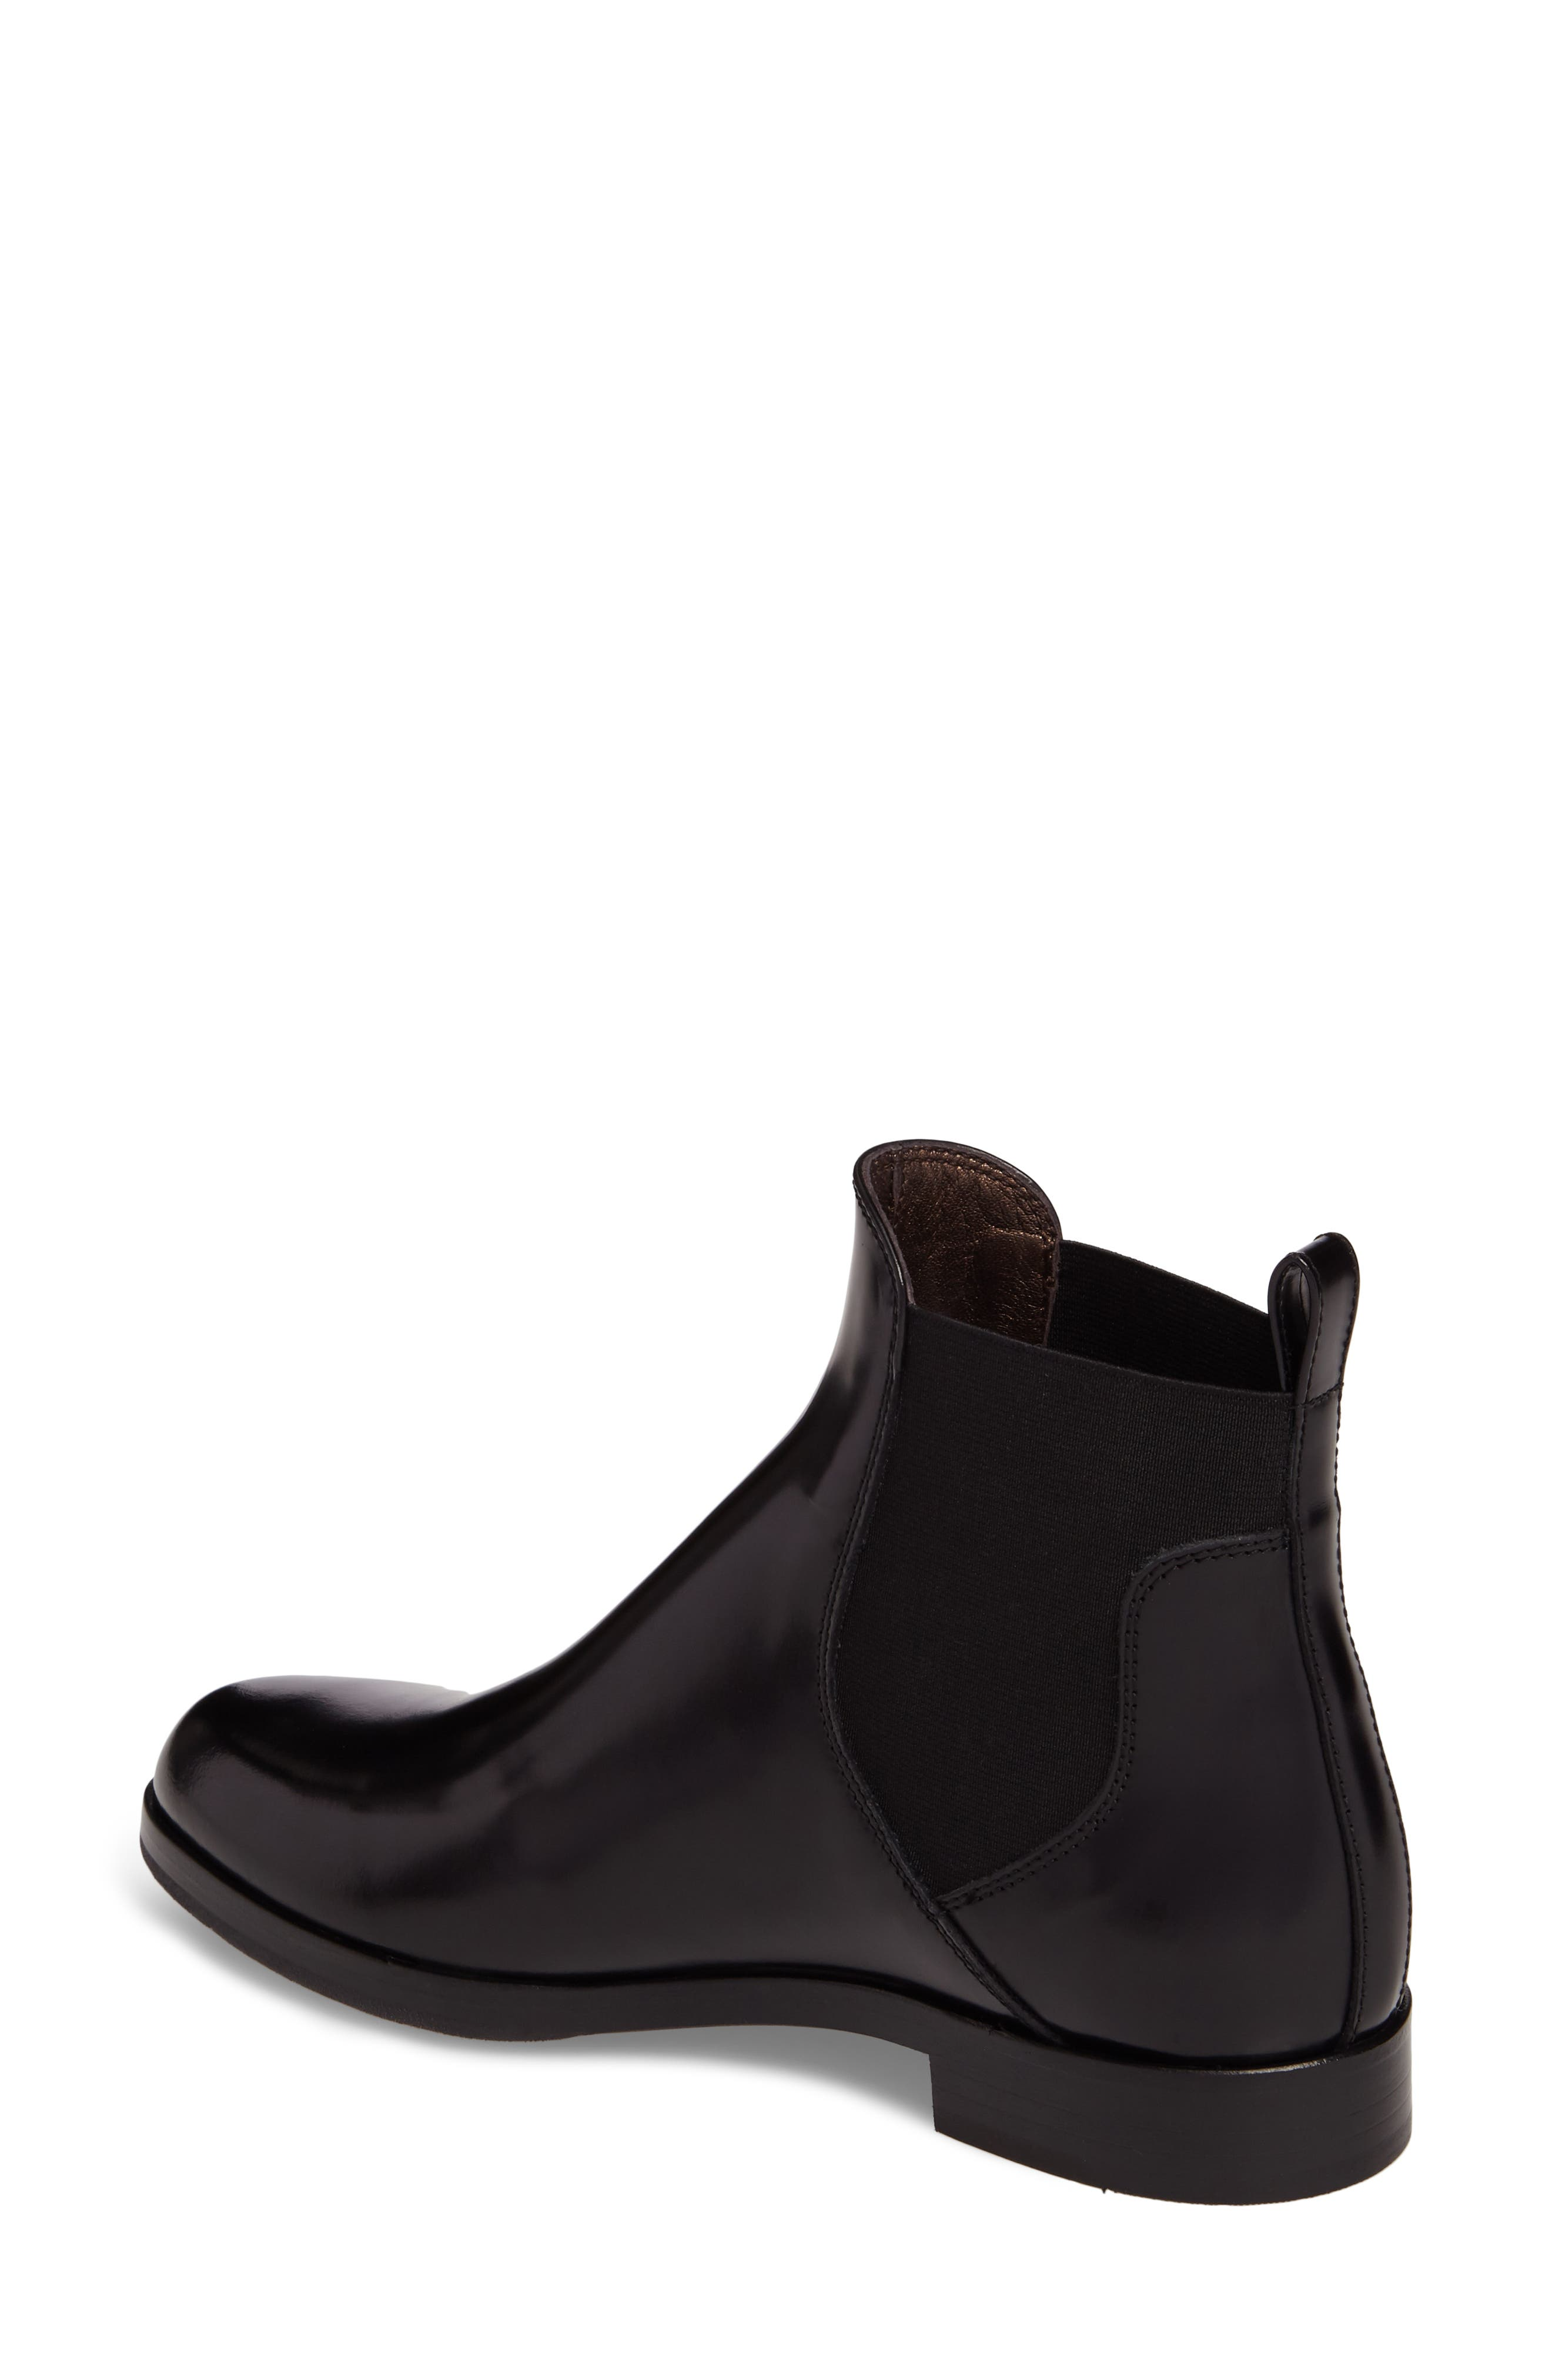 Gored Bootie,                             Alternate thumbnail 2, color,                             Black Leather